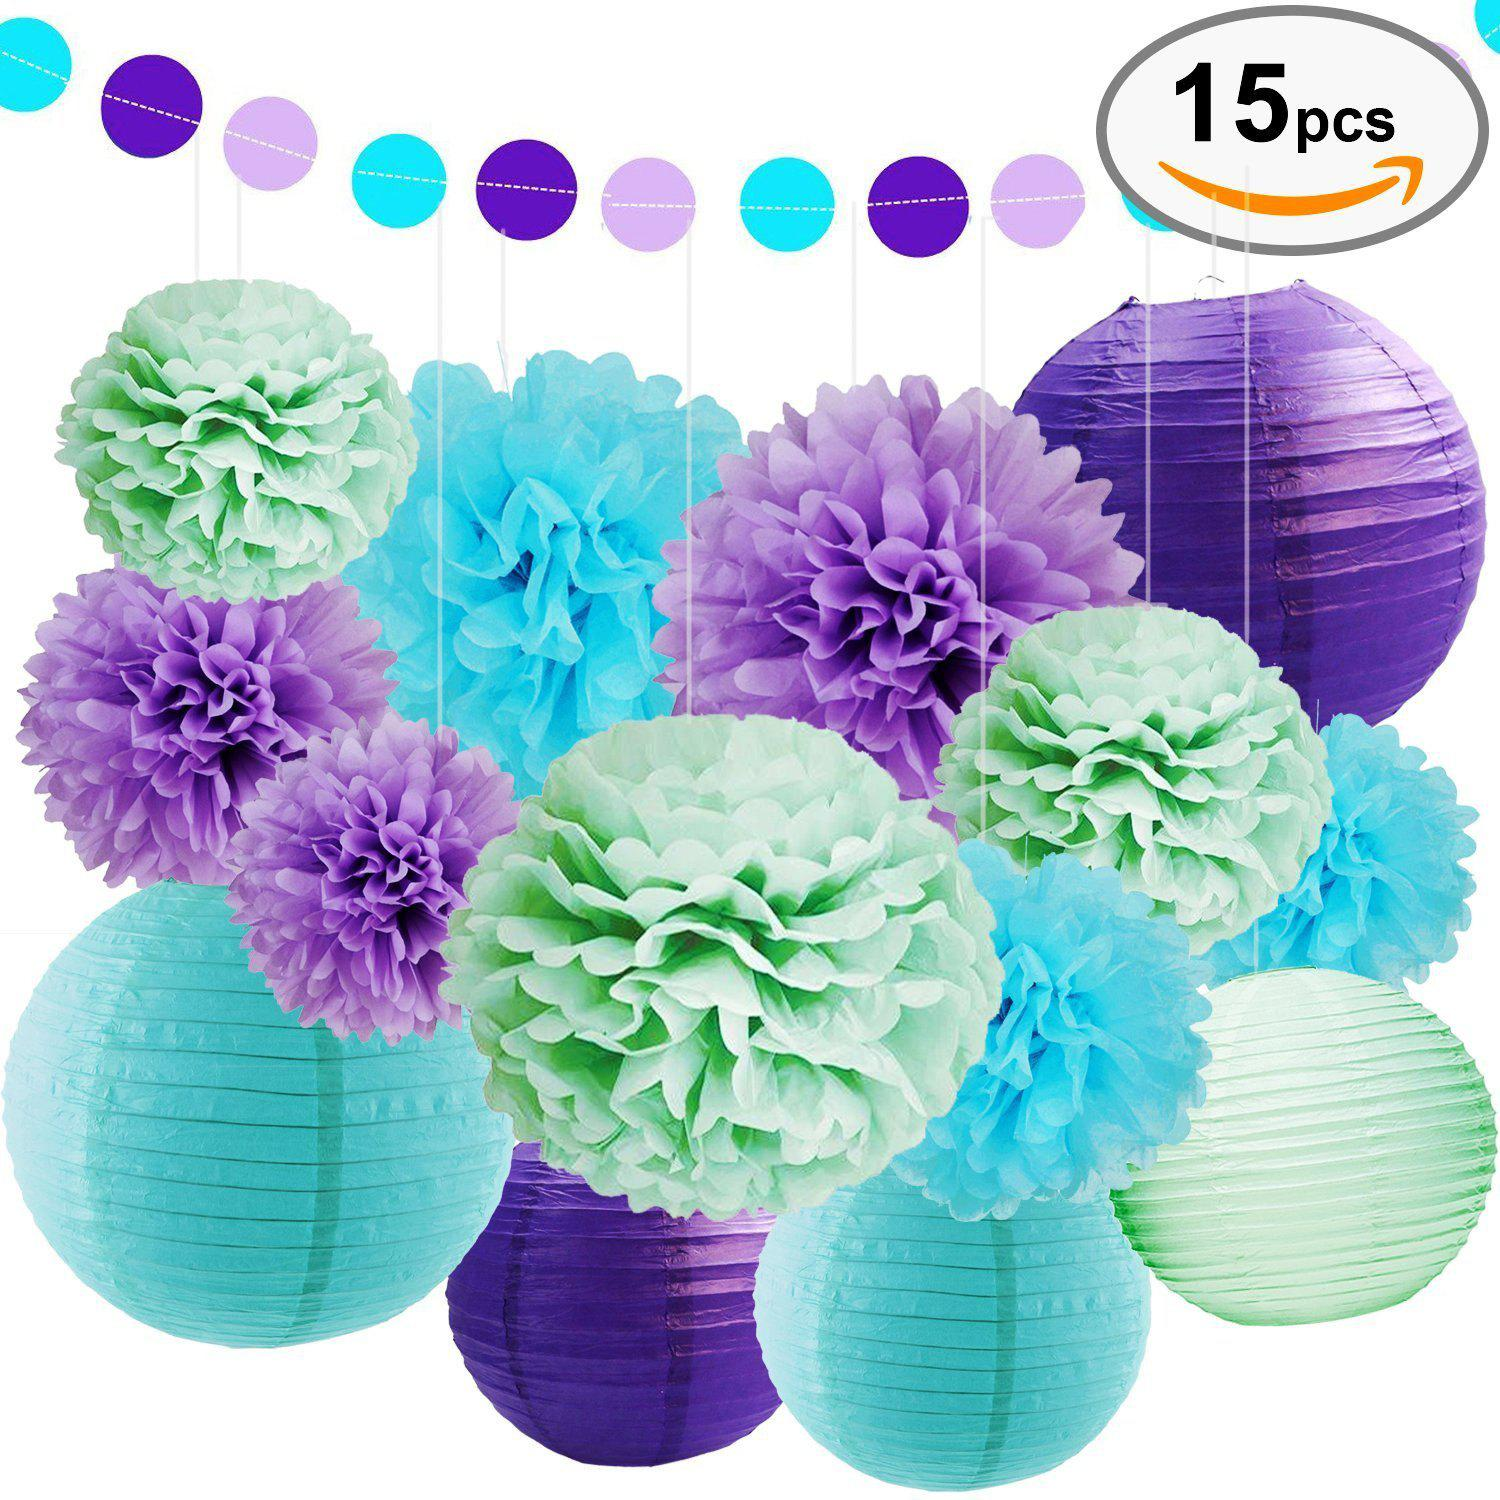 Multicolor Eastern Hope Sea Theme Bridal Shower Party Decoration